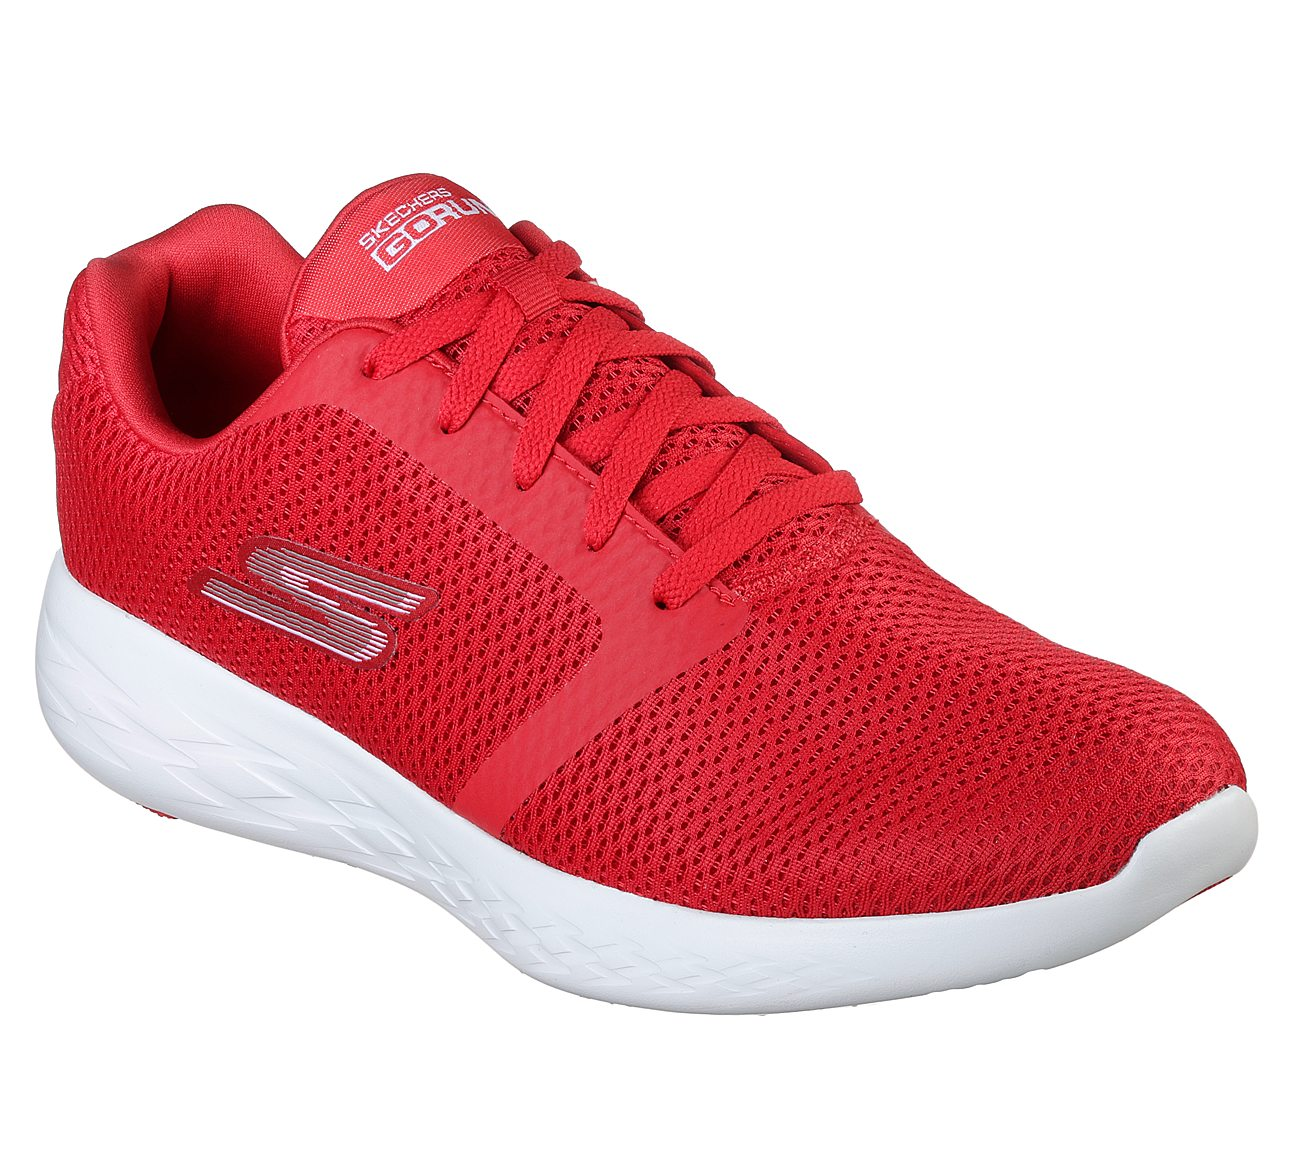 Buy Skechers Gorun 600 Refine Performance Shoes Sepatu Ultra Boost 30 Click Tap To Zoom